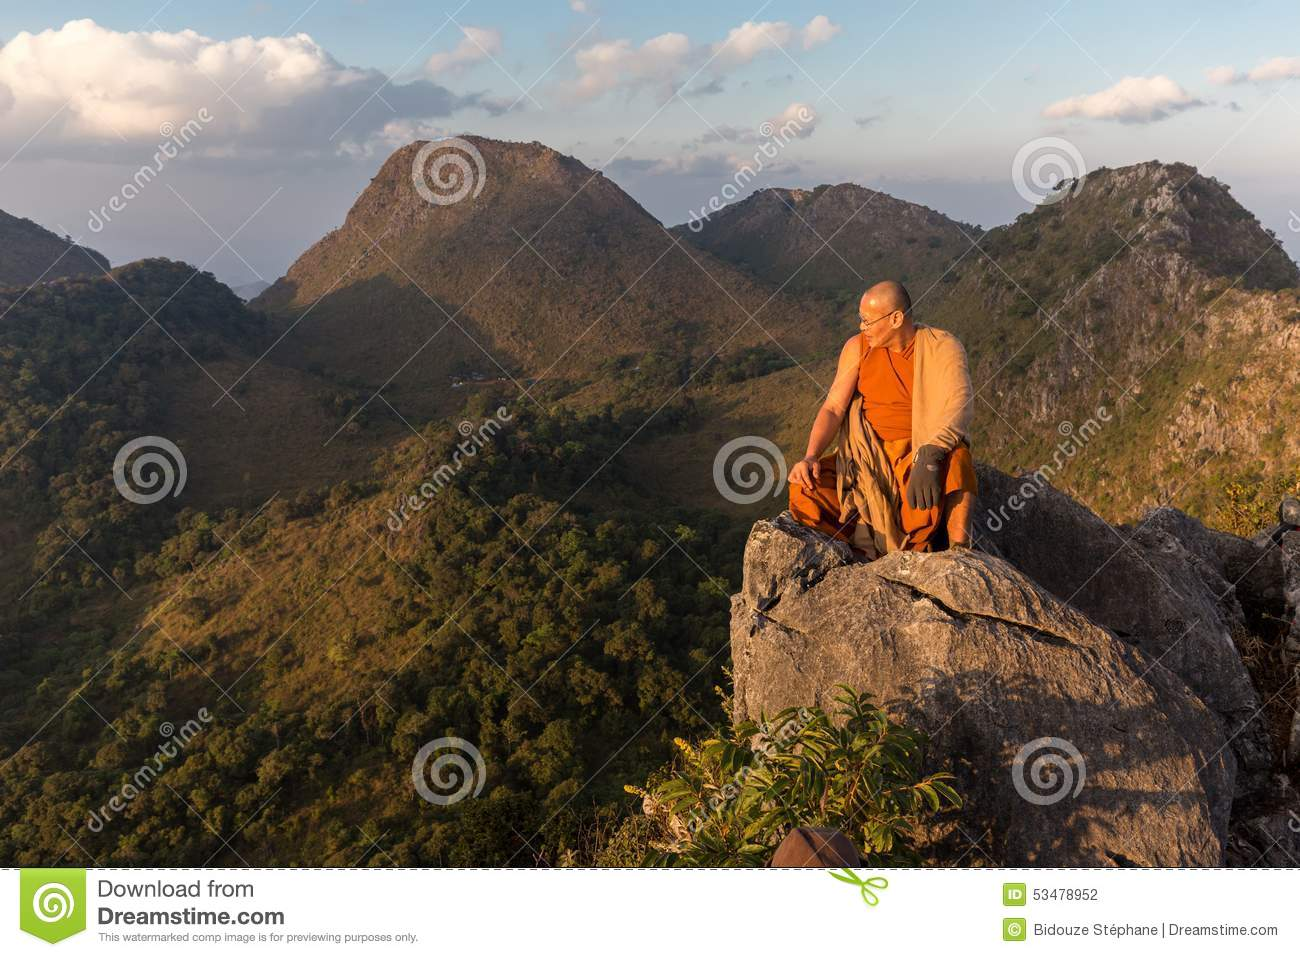 mount lemmon buddhist single men See homes for sale in mount lemmon, az homefindercom is your local home source with millions of listings, and thousands of open houses updated daily.